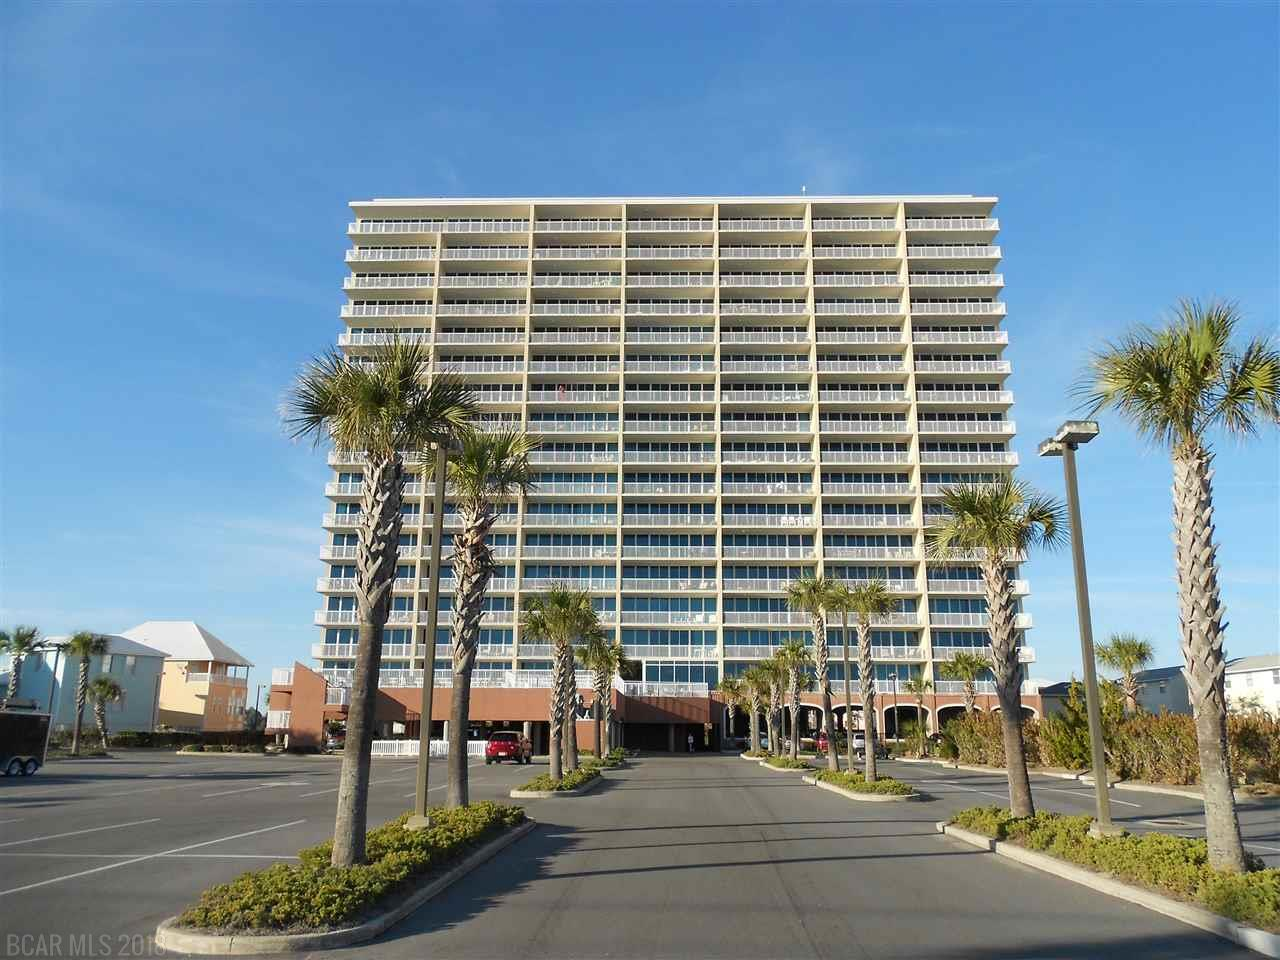 Sanibel Beach Condominium For Sale, Gulf Shores Alabama